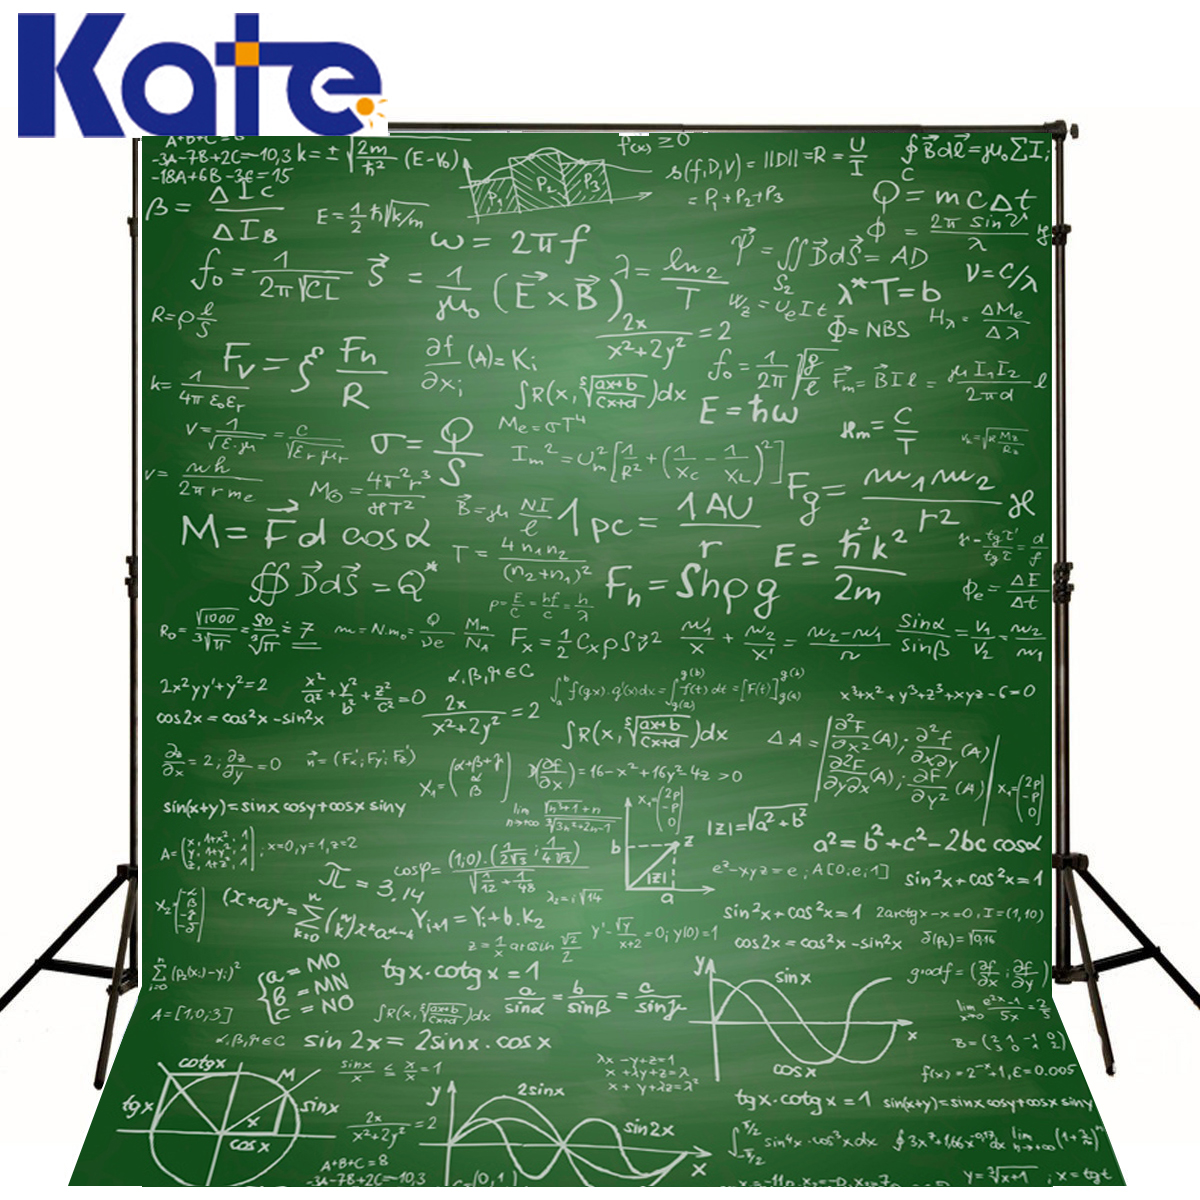 Kate 8x8ft Children Background Back to School Mathematical Equation Formula Photo Studio Backdrop Green Board Chalk Fotografia kate 5x7ft blue graffiti planks backdrop colorful surfboards beach background children summer travel backdrop for photo studio